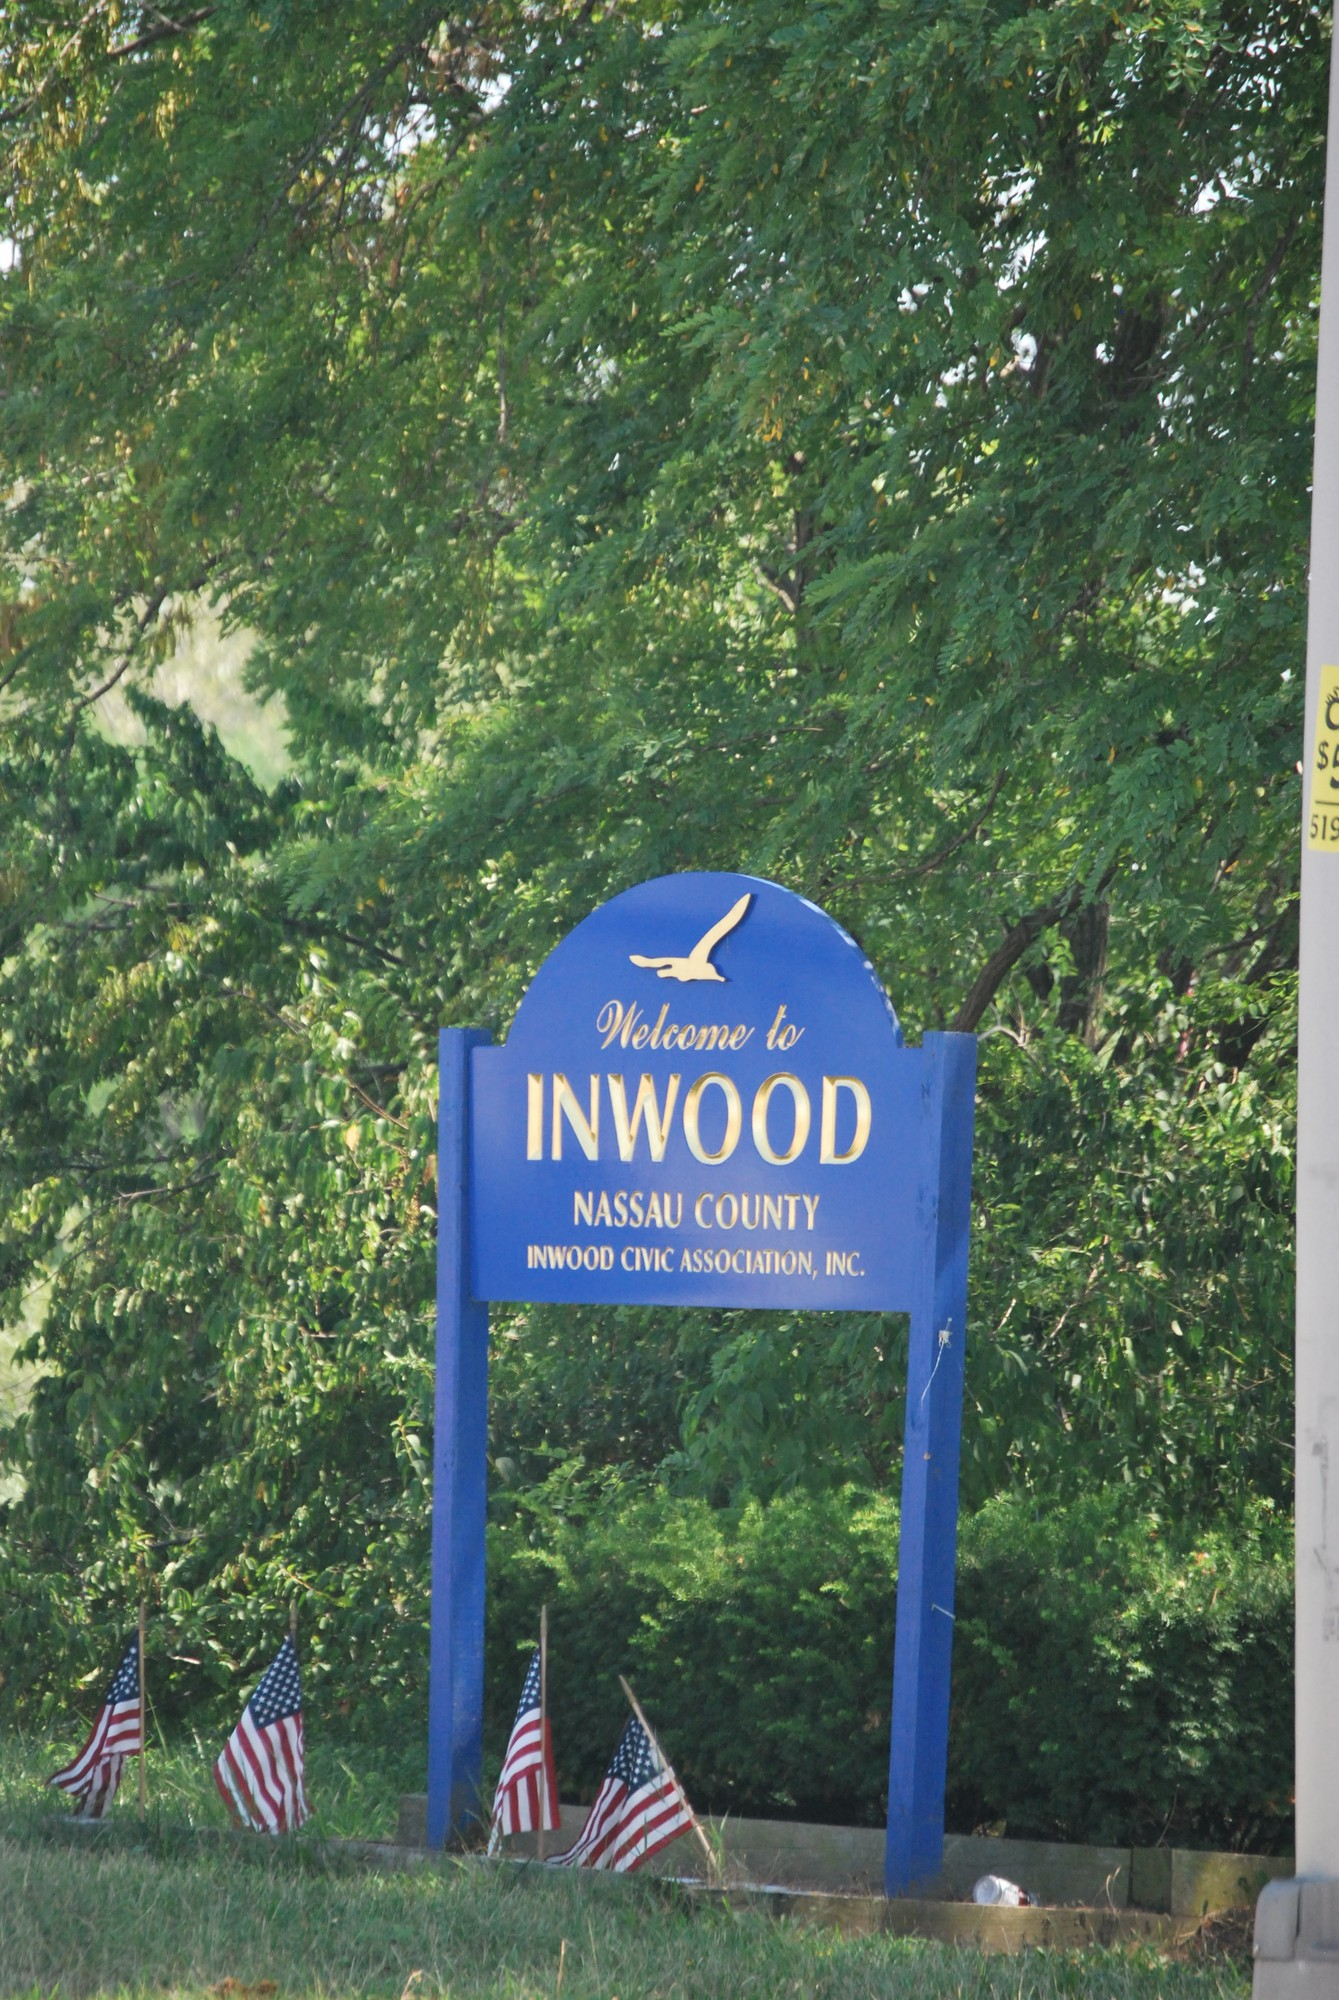 Inwood residents and landscaping business owners in Inwood mowed the grass and cleaned up the shoulder areas of the Nassau Expressway.